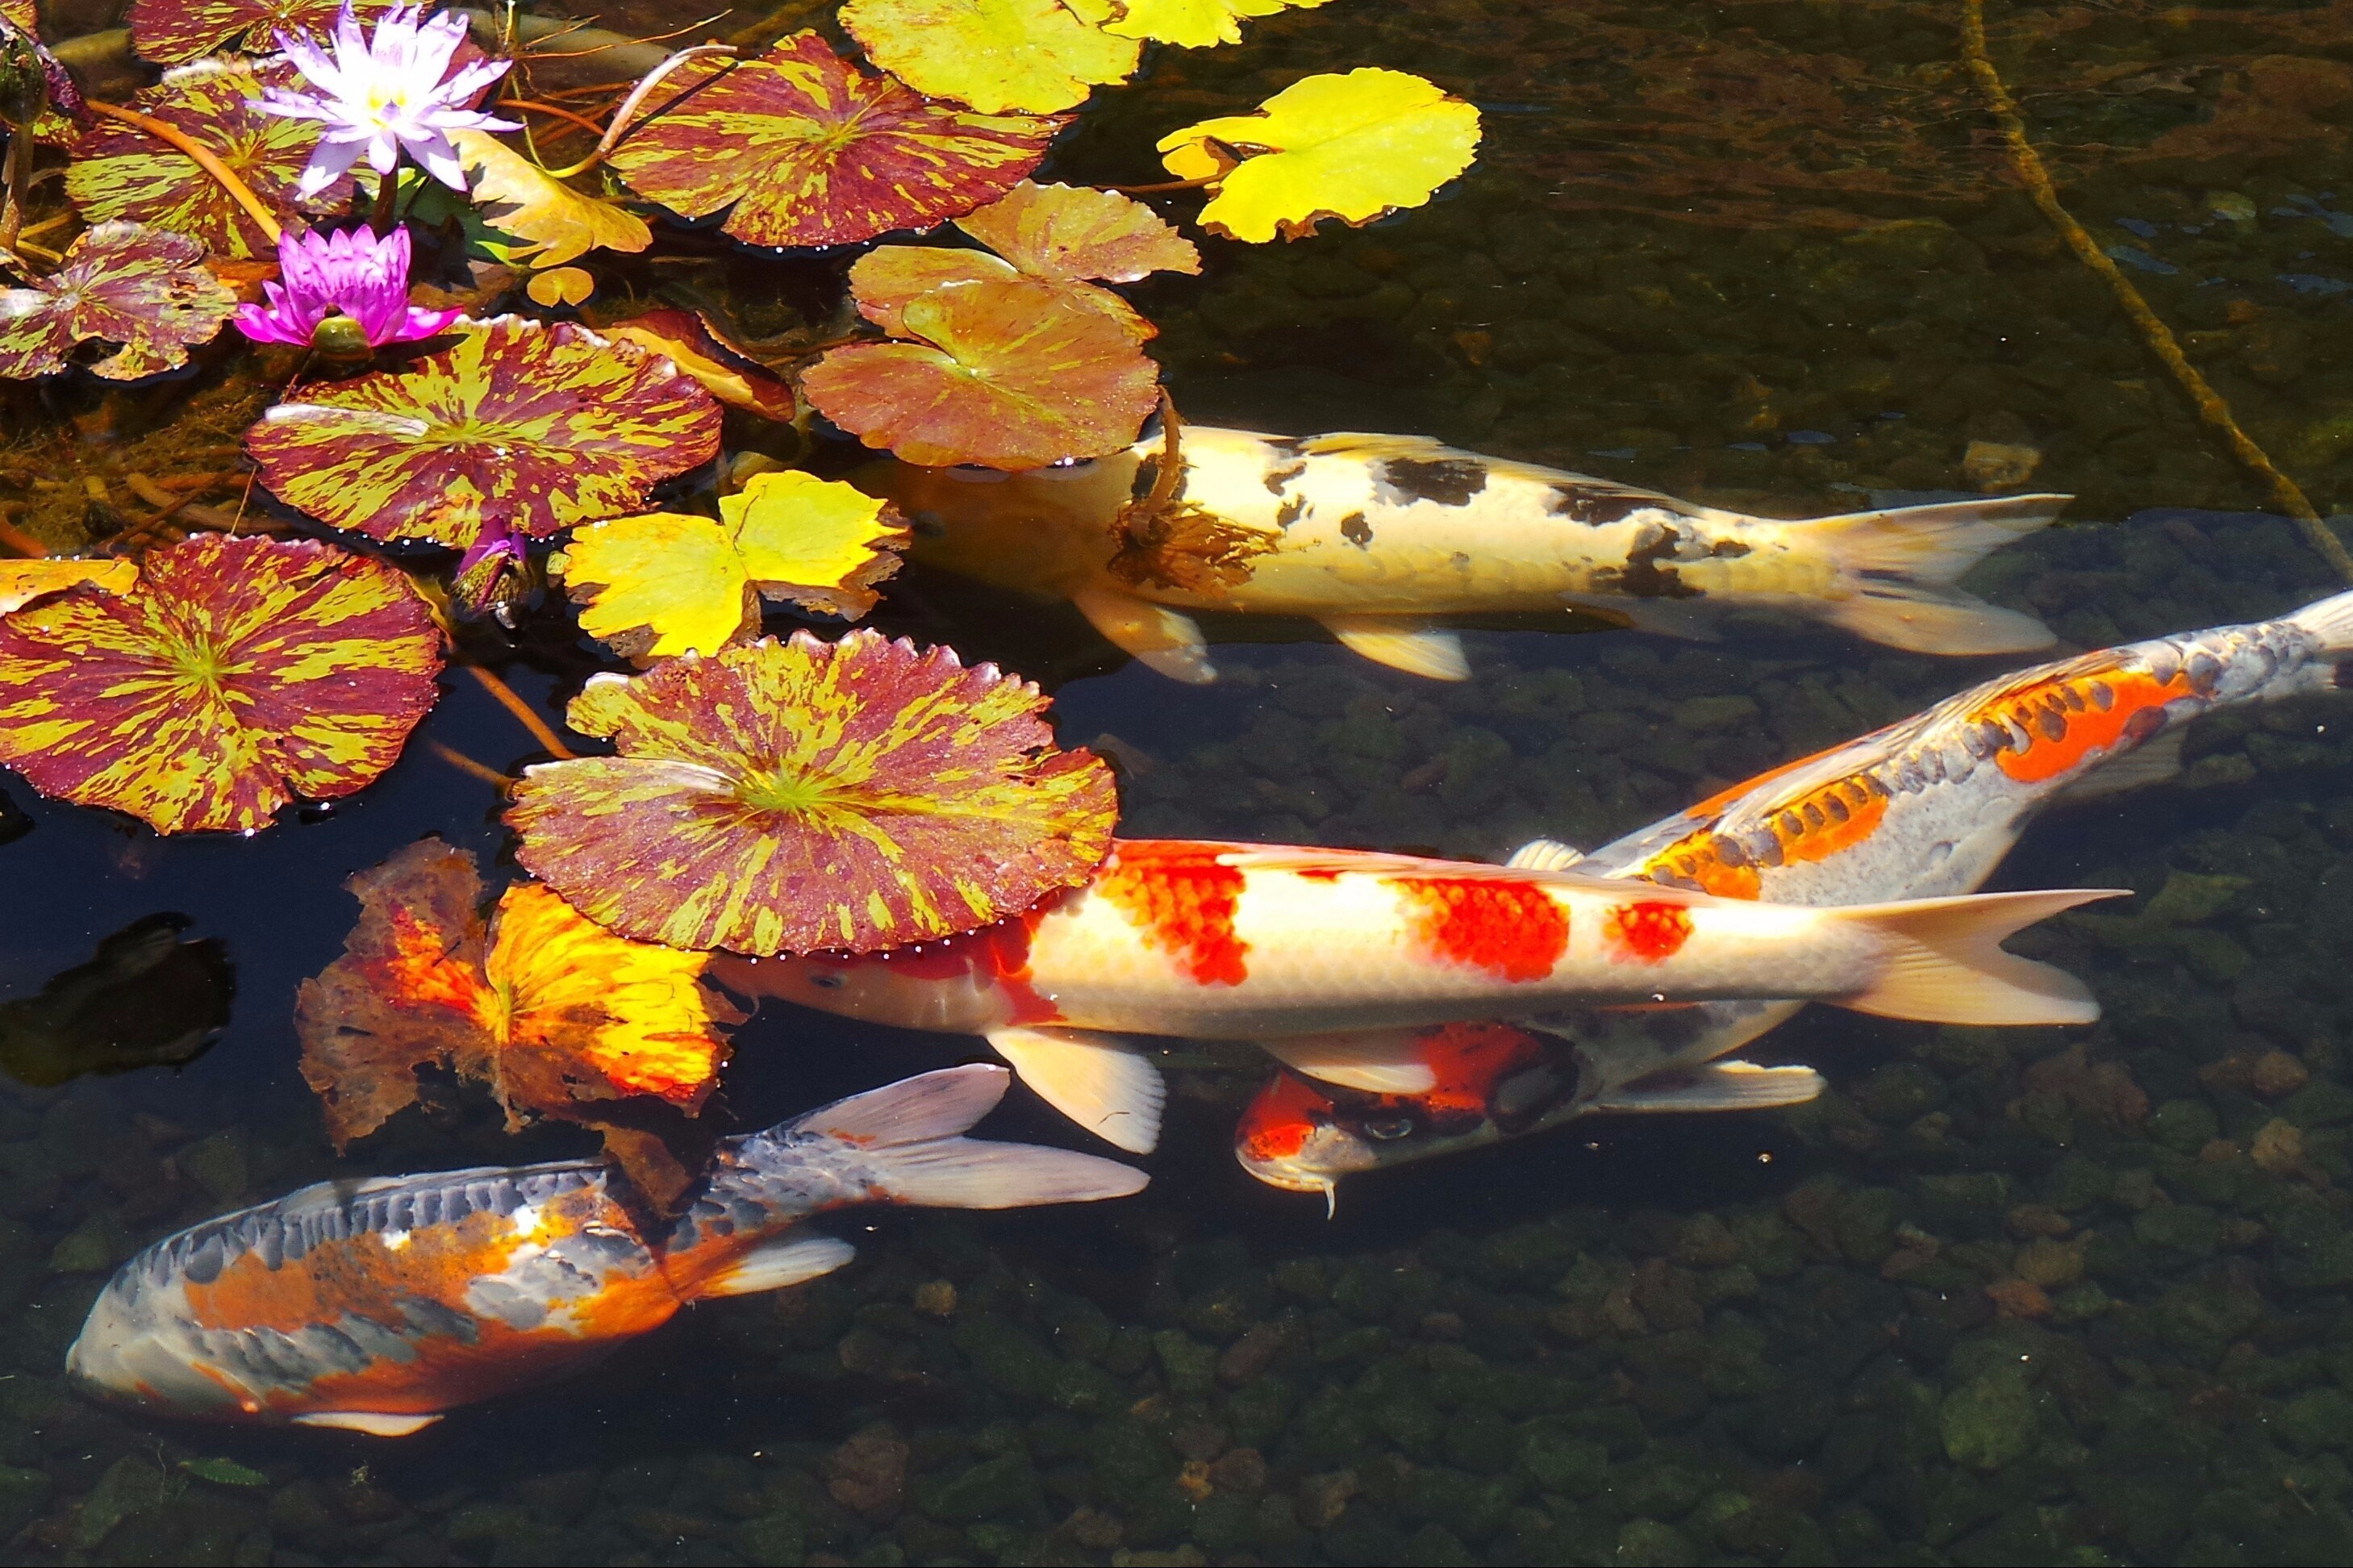 Download 950+ Gambar Ikan Koi Mati HD Gratis